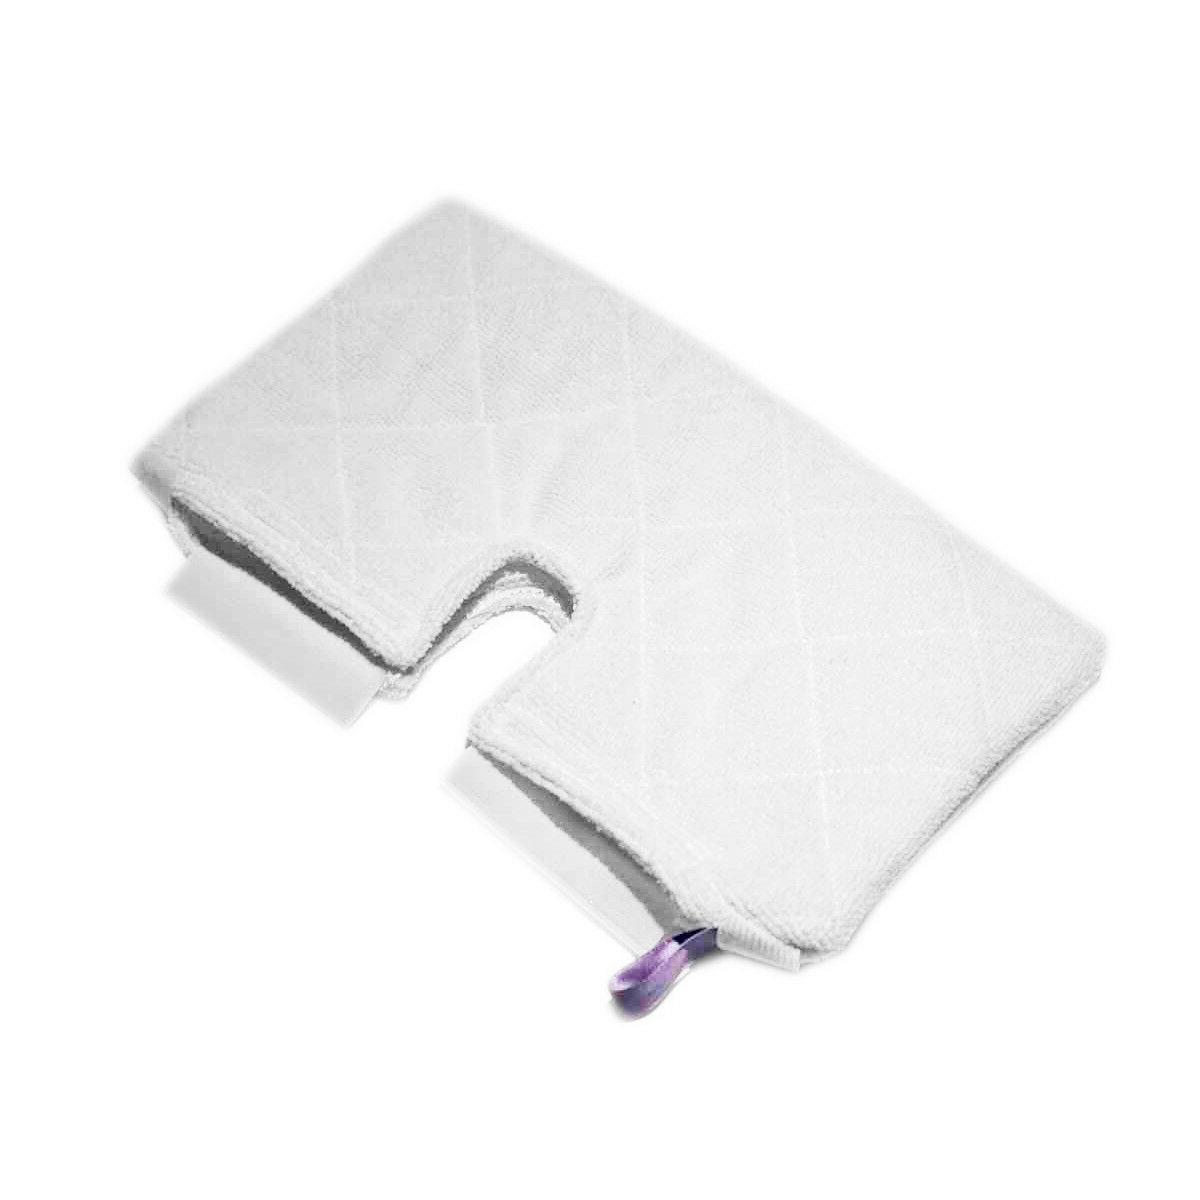 3 Co. Mop Pads Steam Pocket Mop Pad